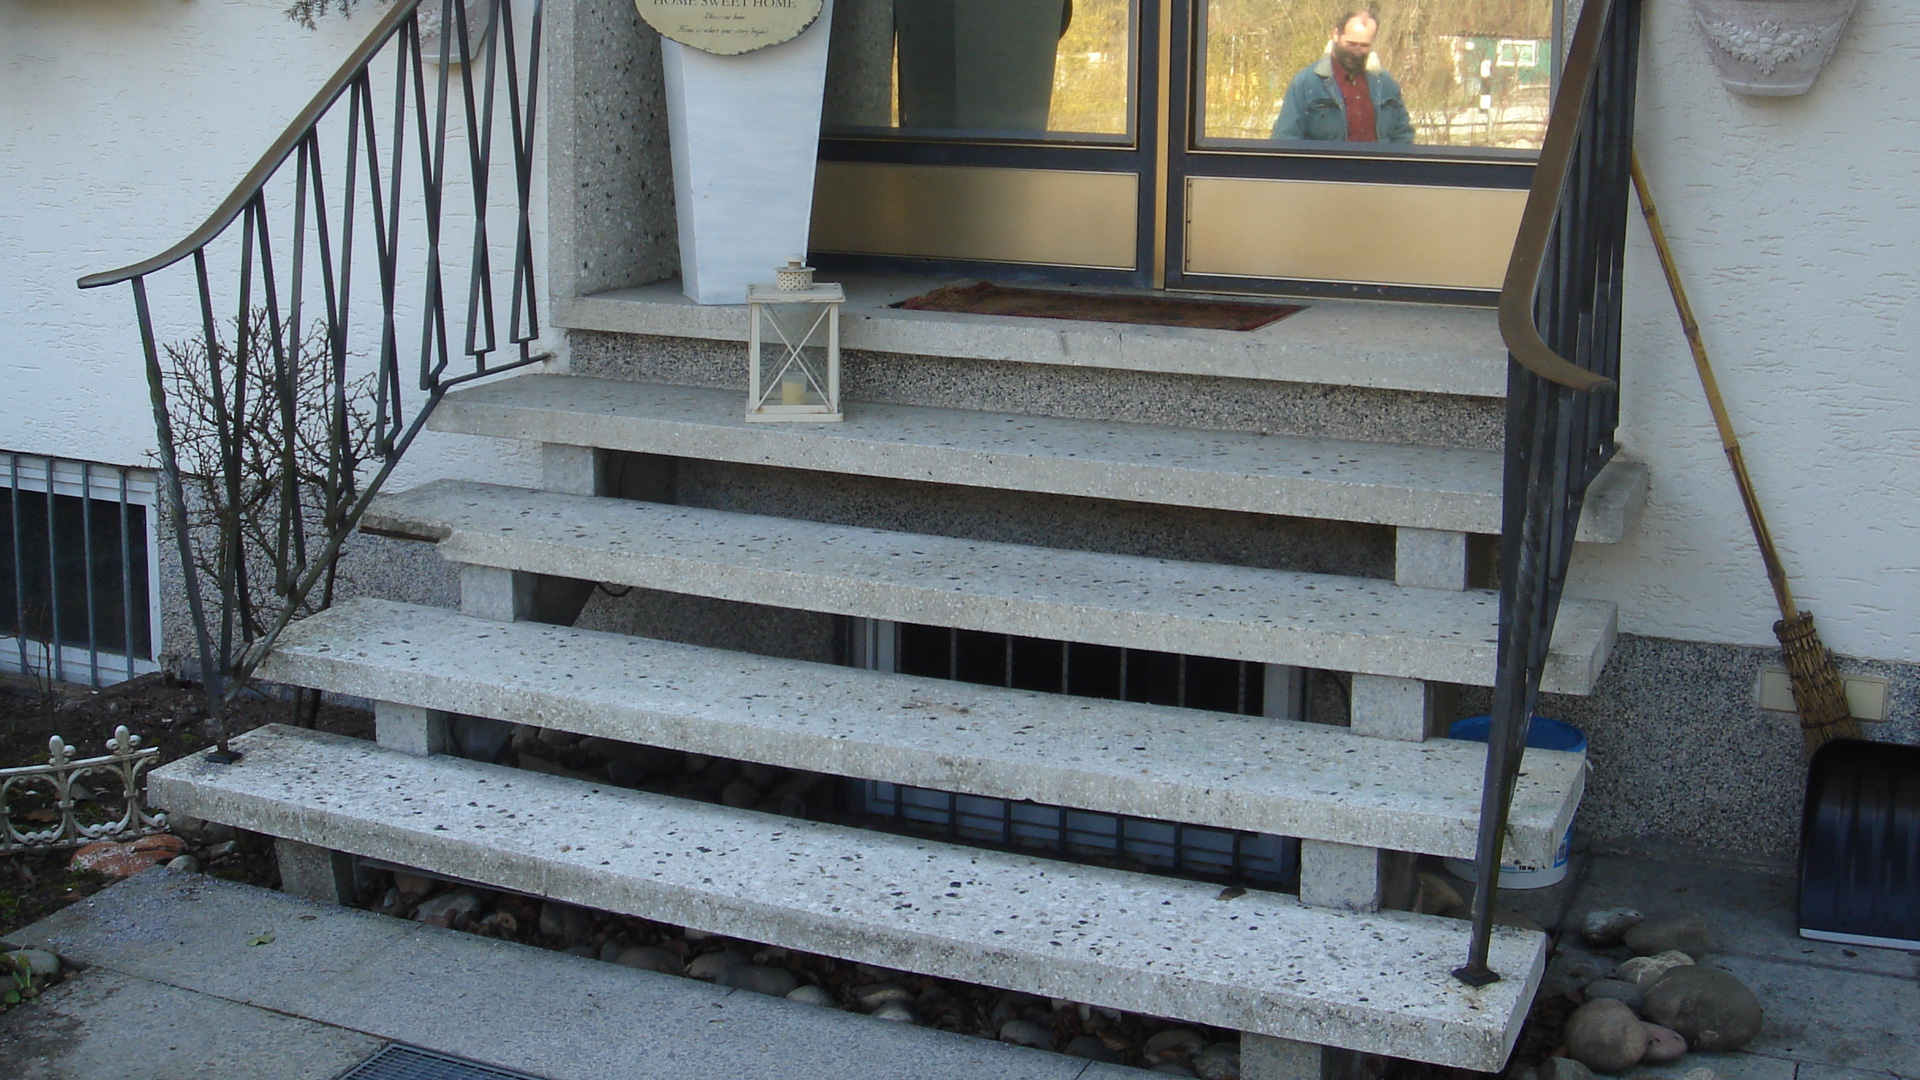 Super Betontreppe Sanieren | What Carpet Fitting Tools Should You Use To MG71